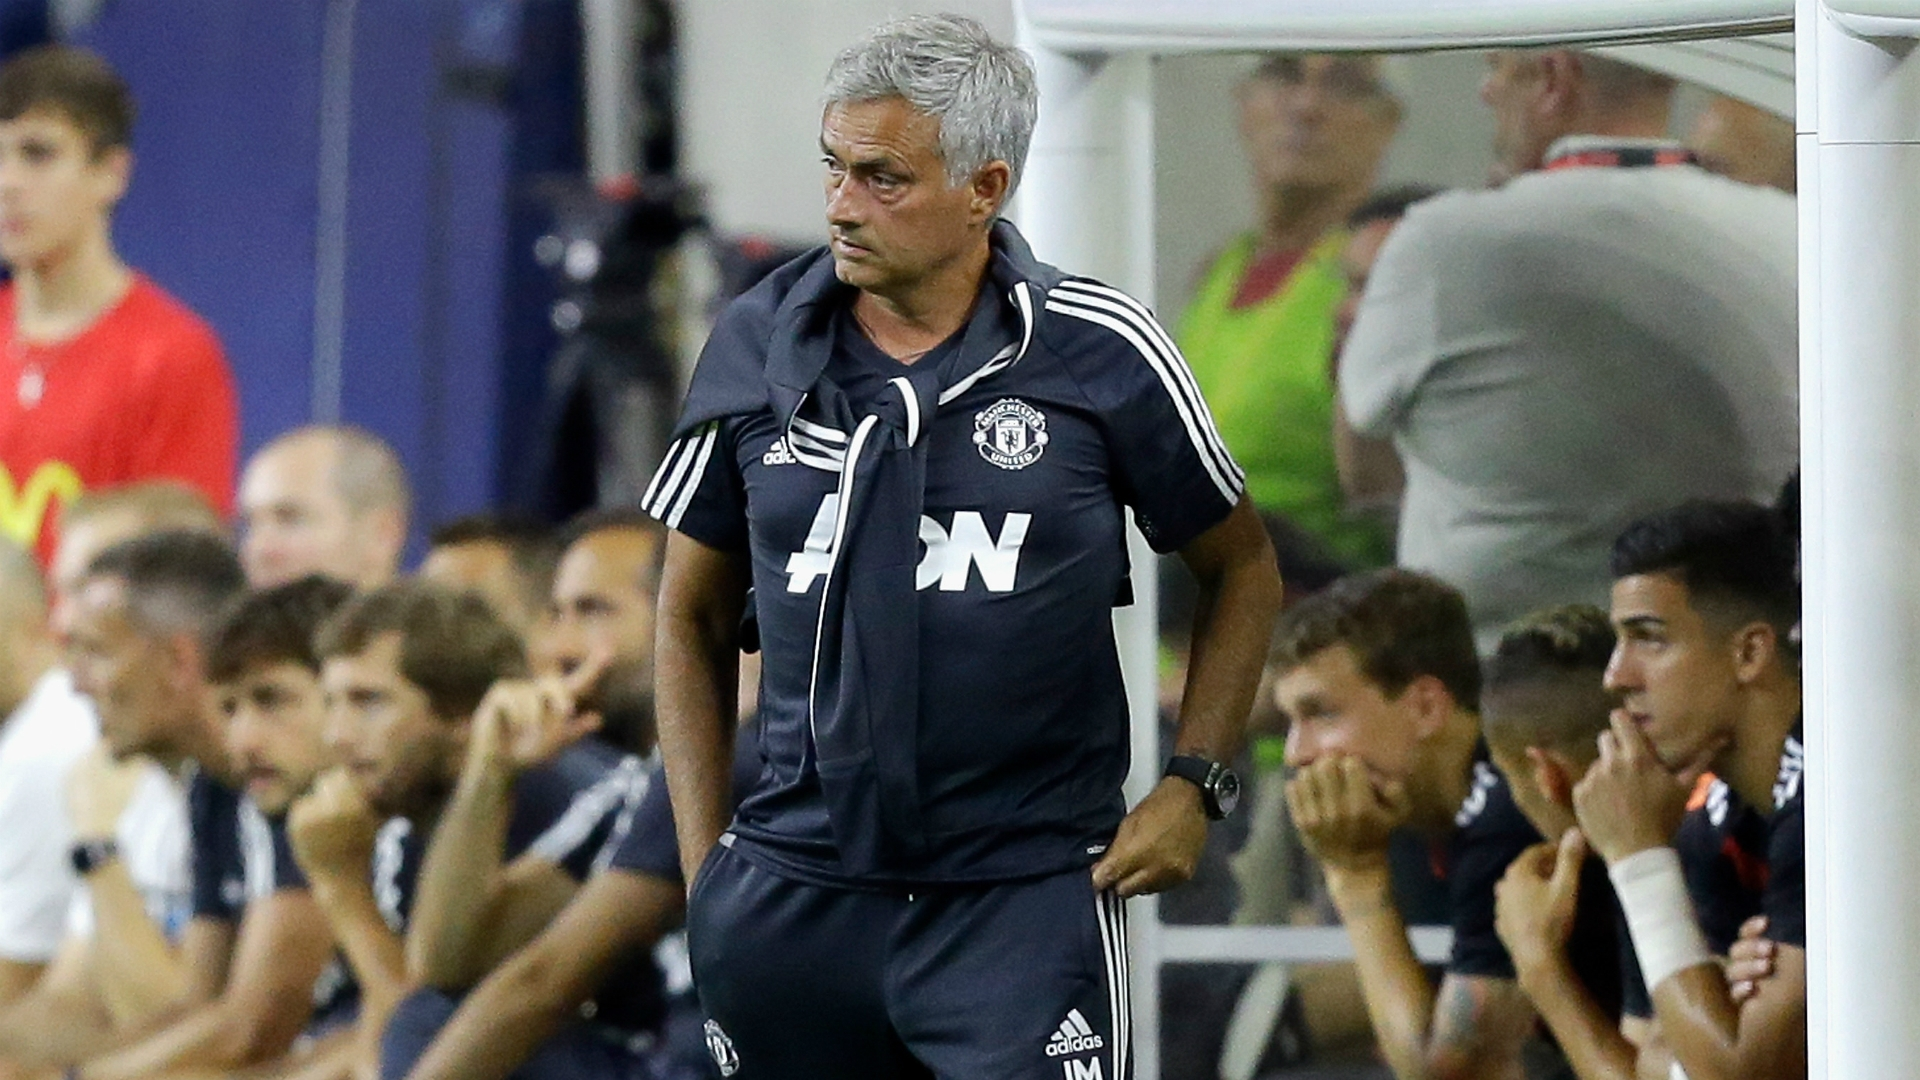 In fact, Mourinho is positively thrilled with the way the pre-season preparation worked out for the team. The main point is that United had no important injuries during the series of friendlies and should be fully ready for the official games coming their way.